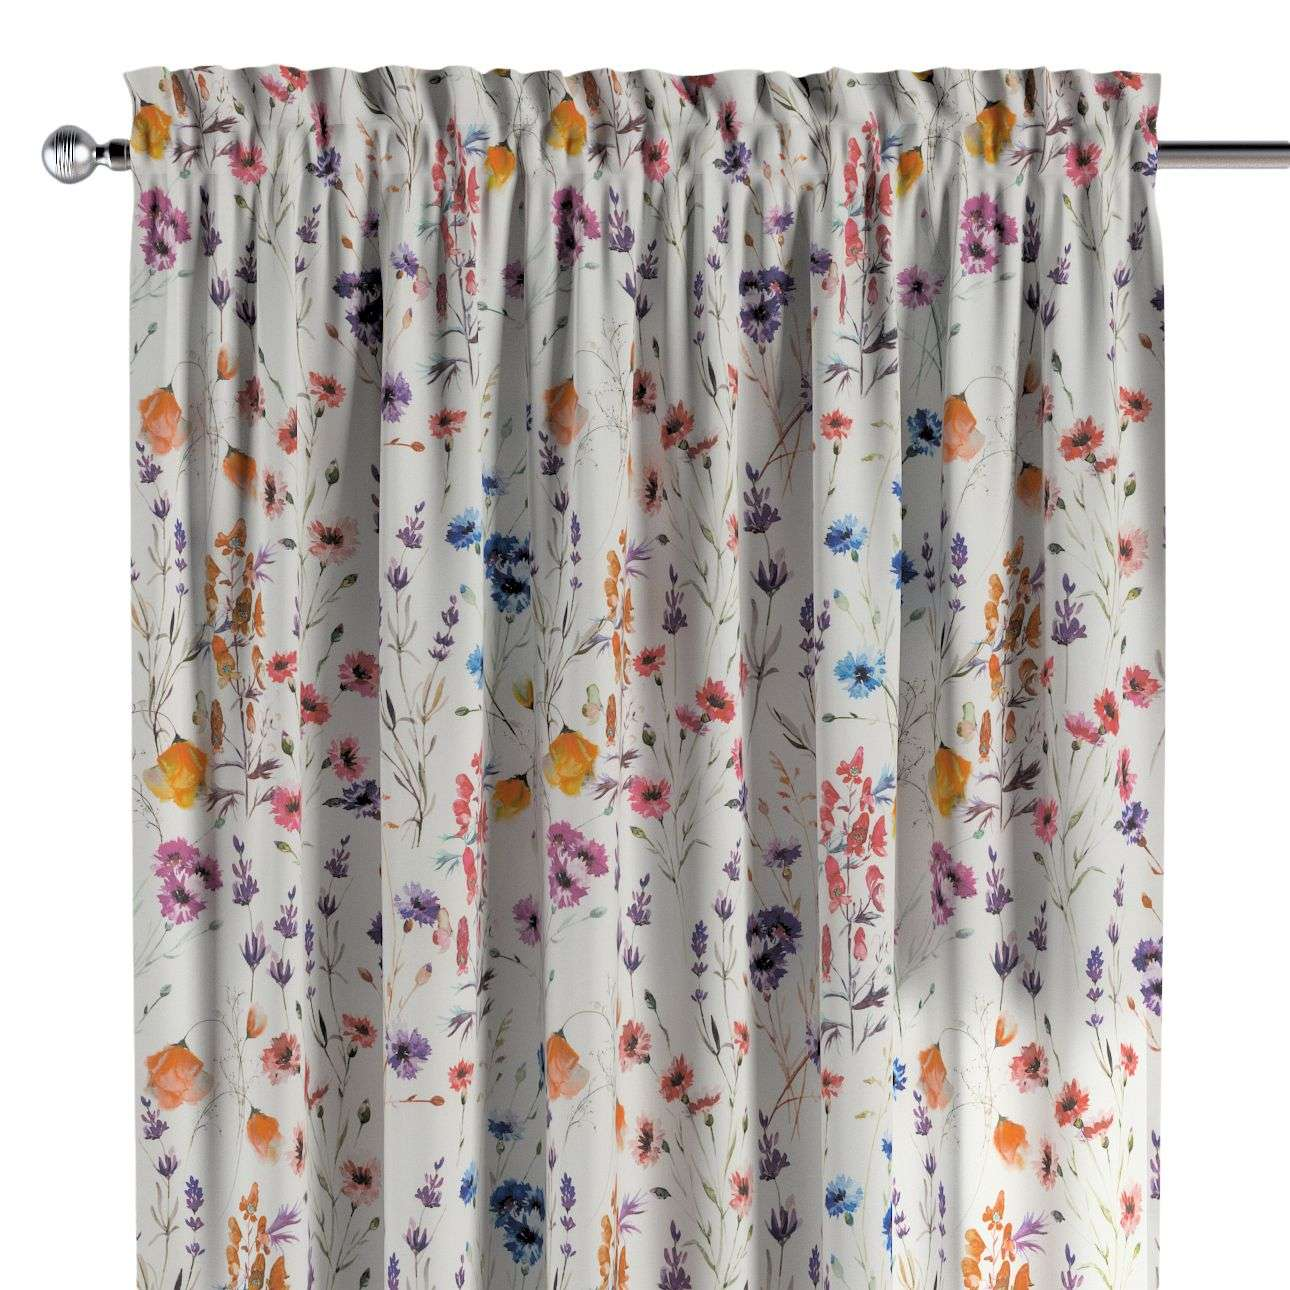 Slot and frill curtains 130 x 260 cm (51 x 102 inch) in collection Flowers, fabric: 141-53